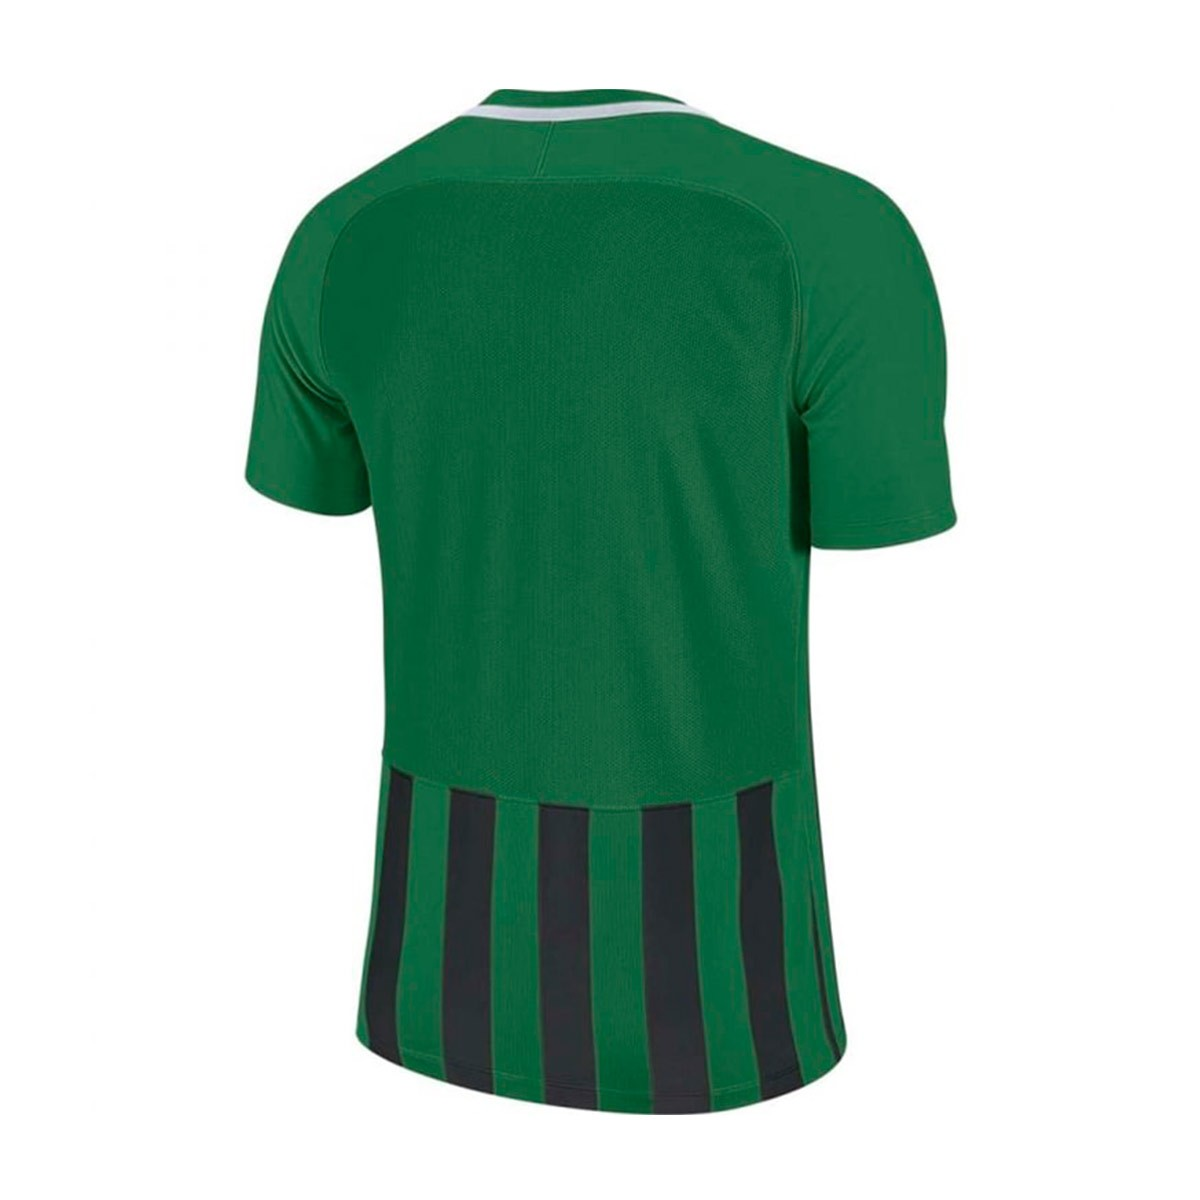 Maillot Nike Striped Division III mc Niño